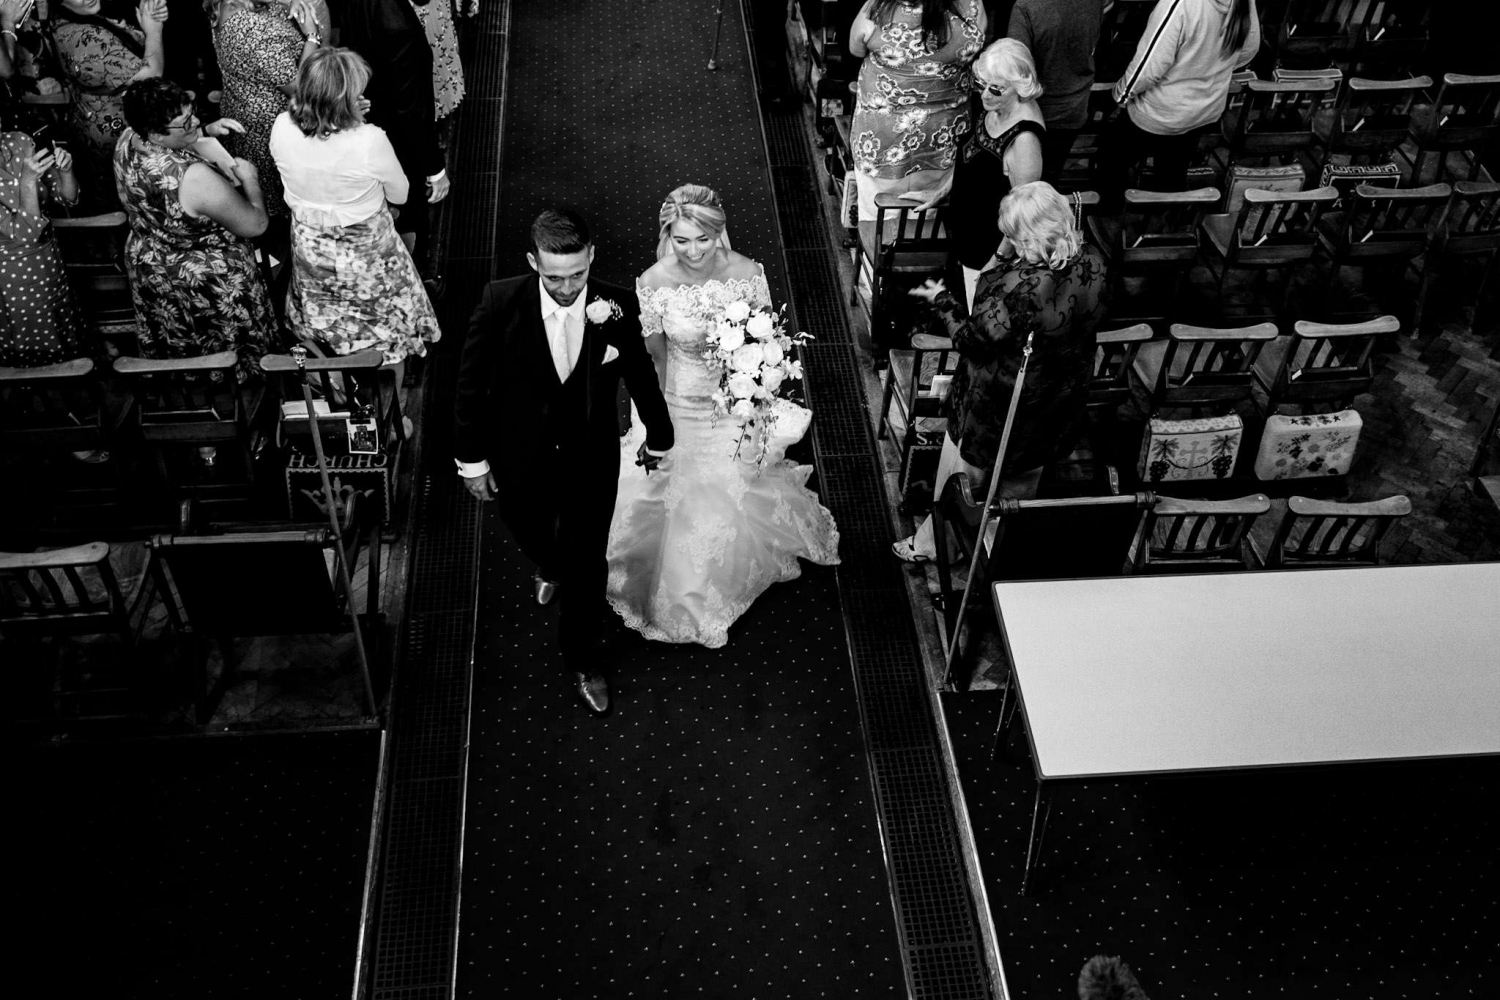 Newly married walking up the aisle of a church after getting married